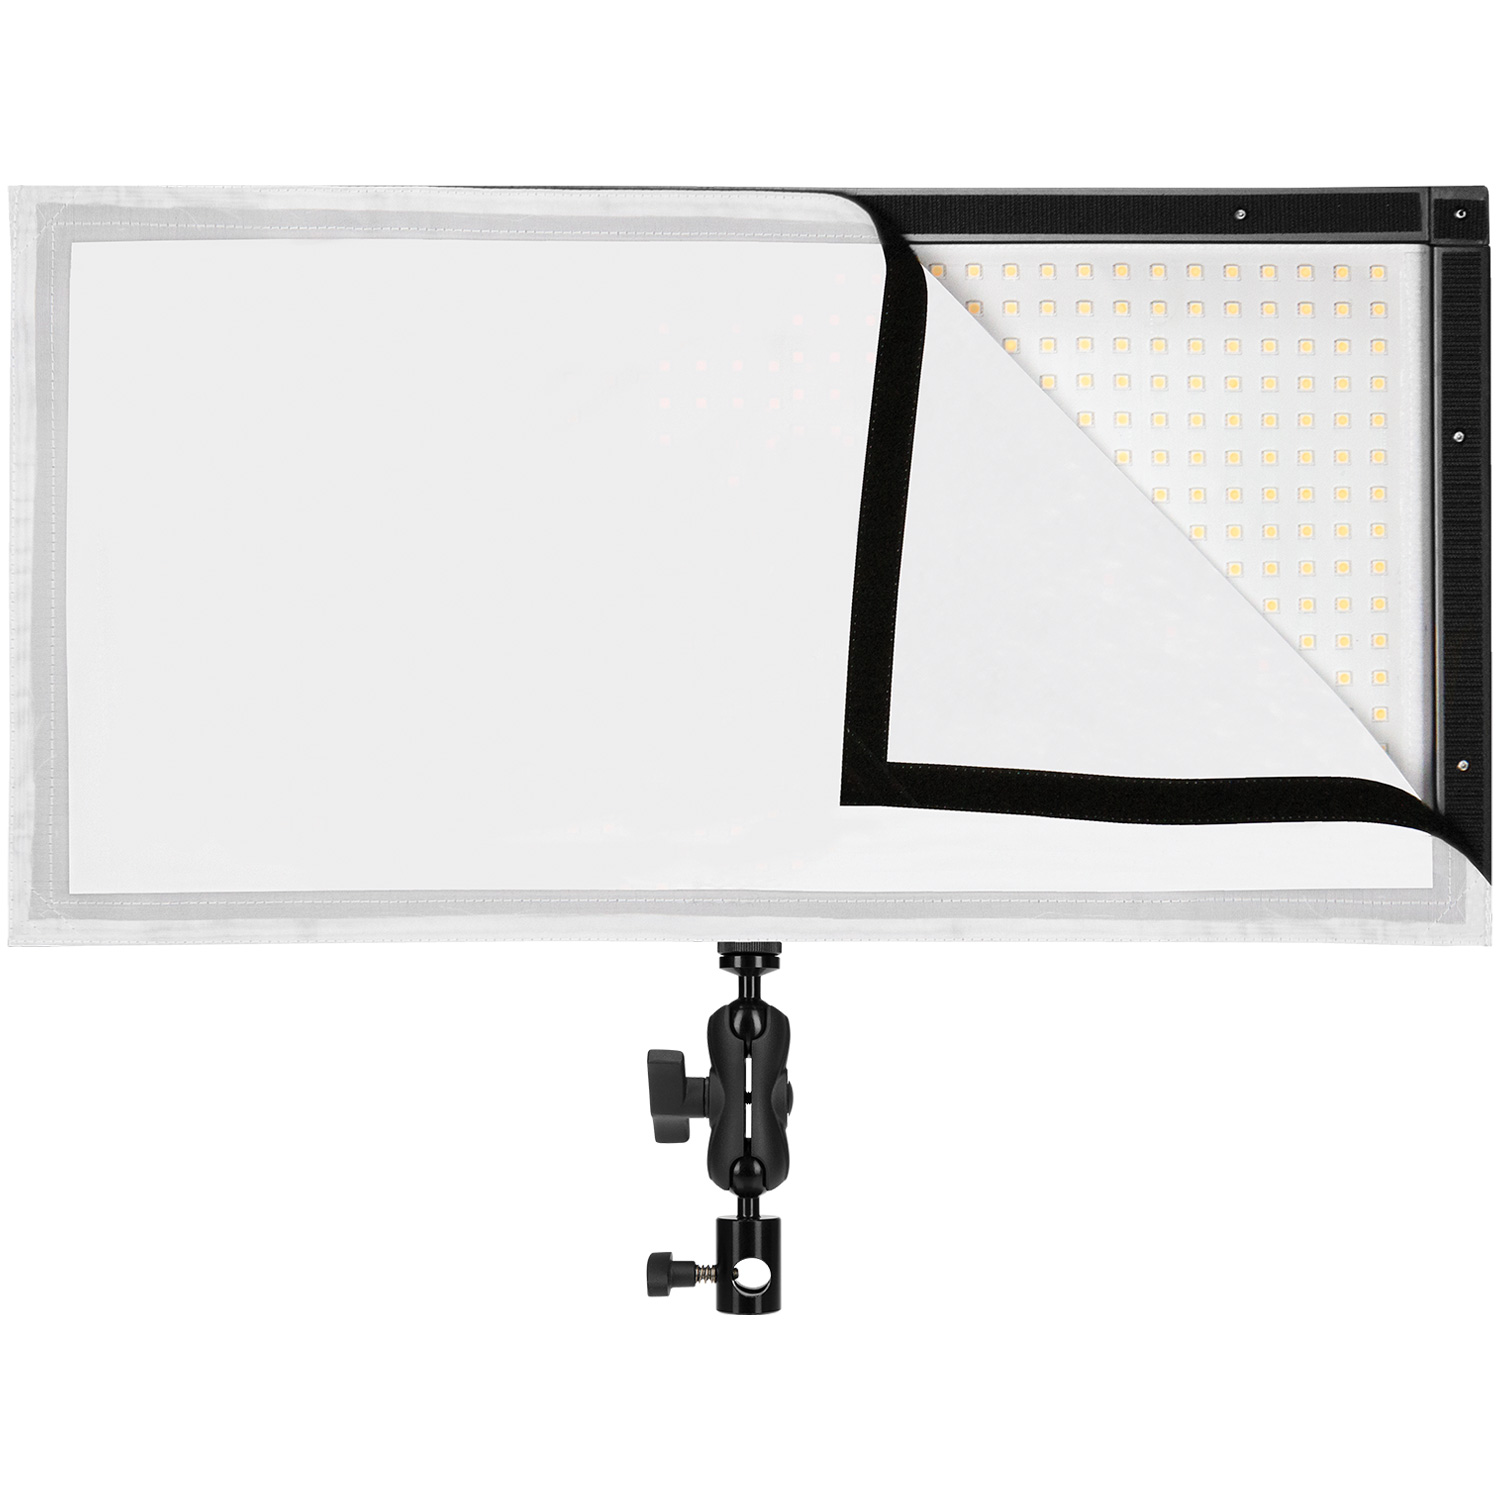 Original Flex Daylight LED 1-Light Set (1' x 2', US/CA Plug)